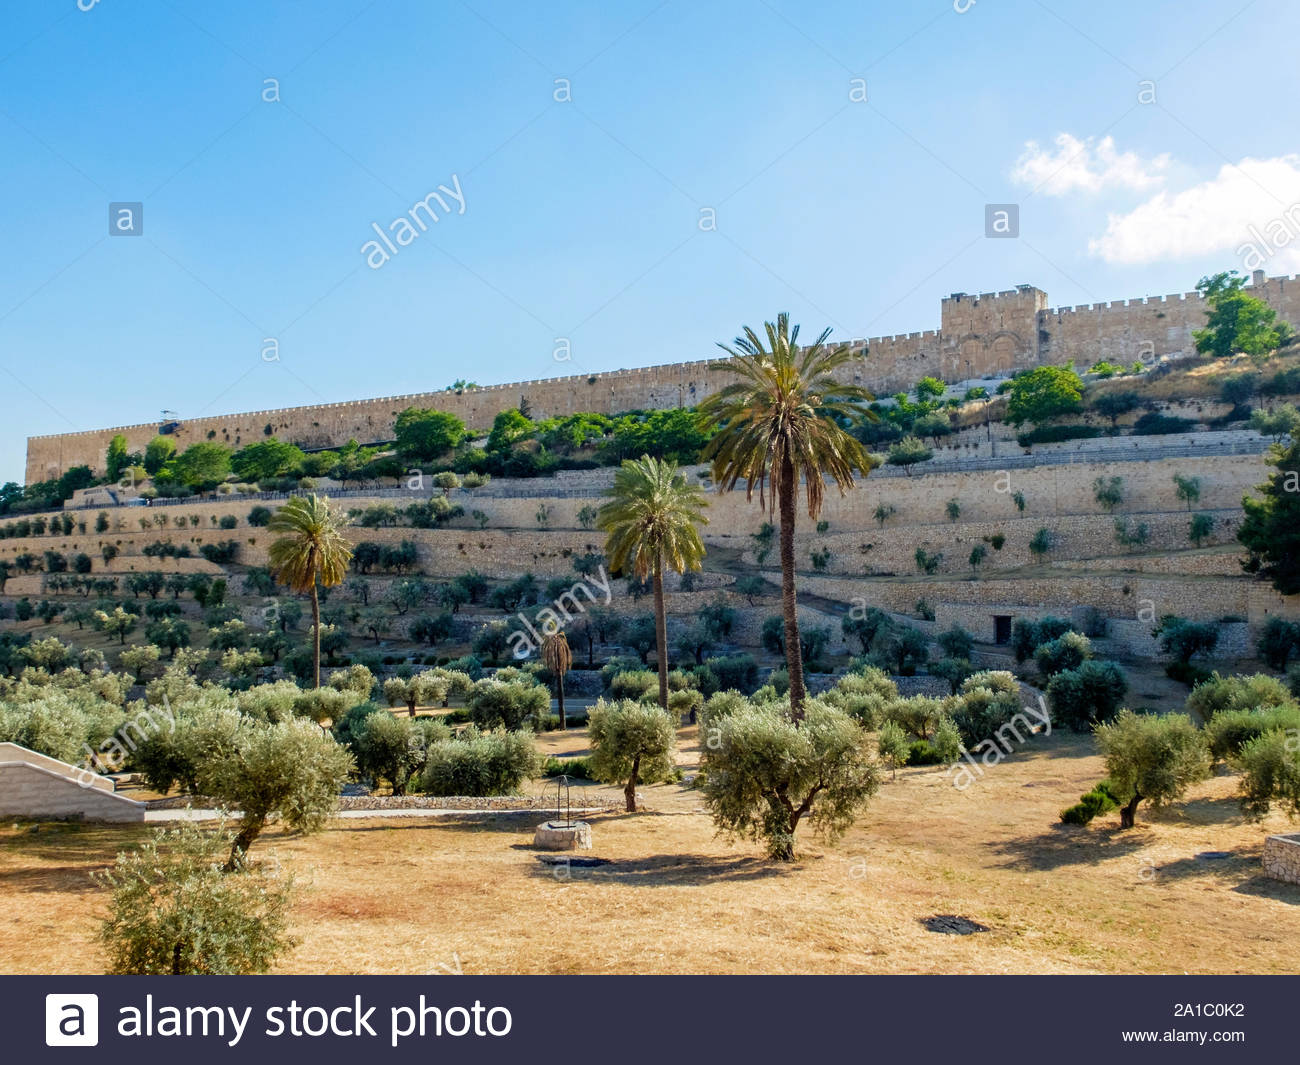 Israel, Jerusalem District, Jerusalem. Kidron Valley and eastern city walls of the Old City. Stock Photo